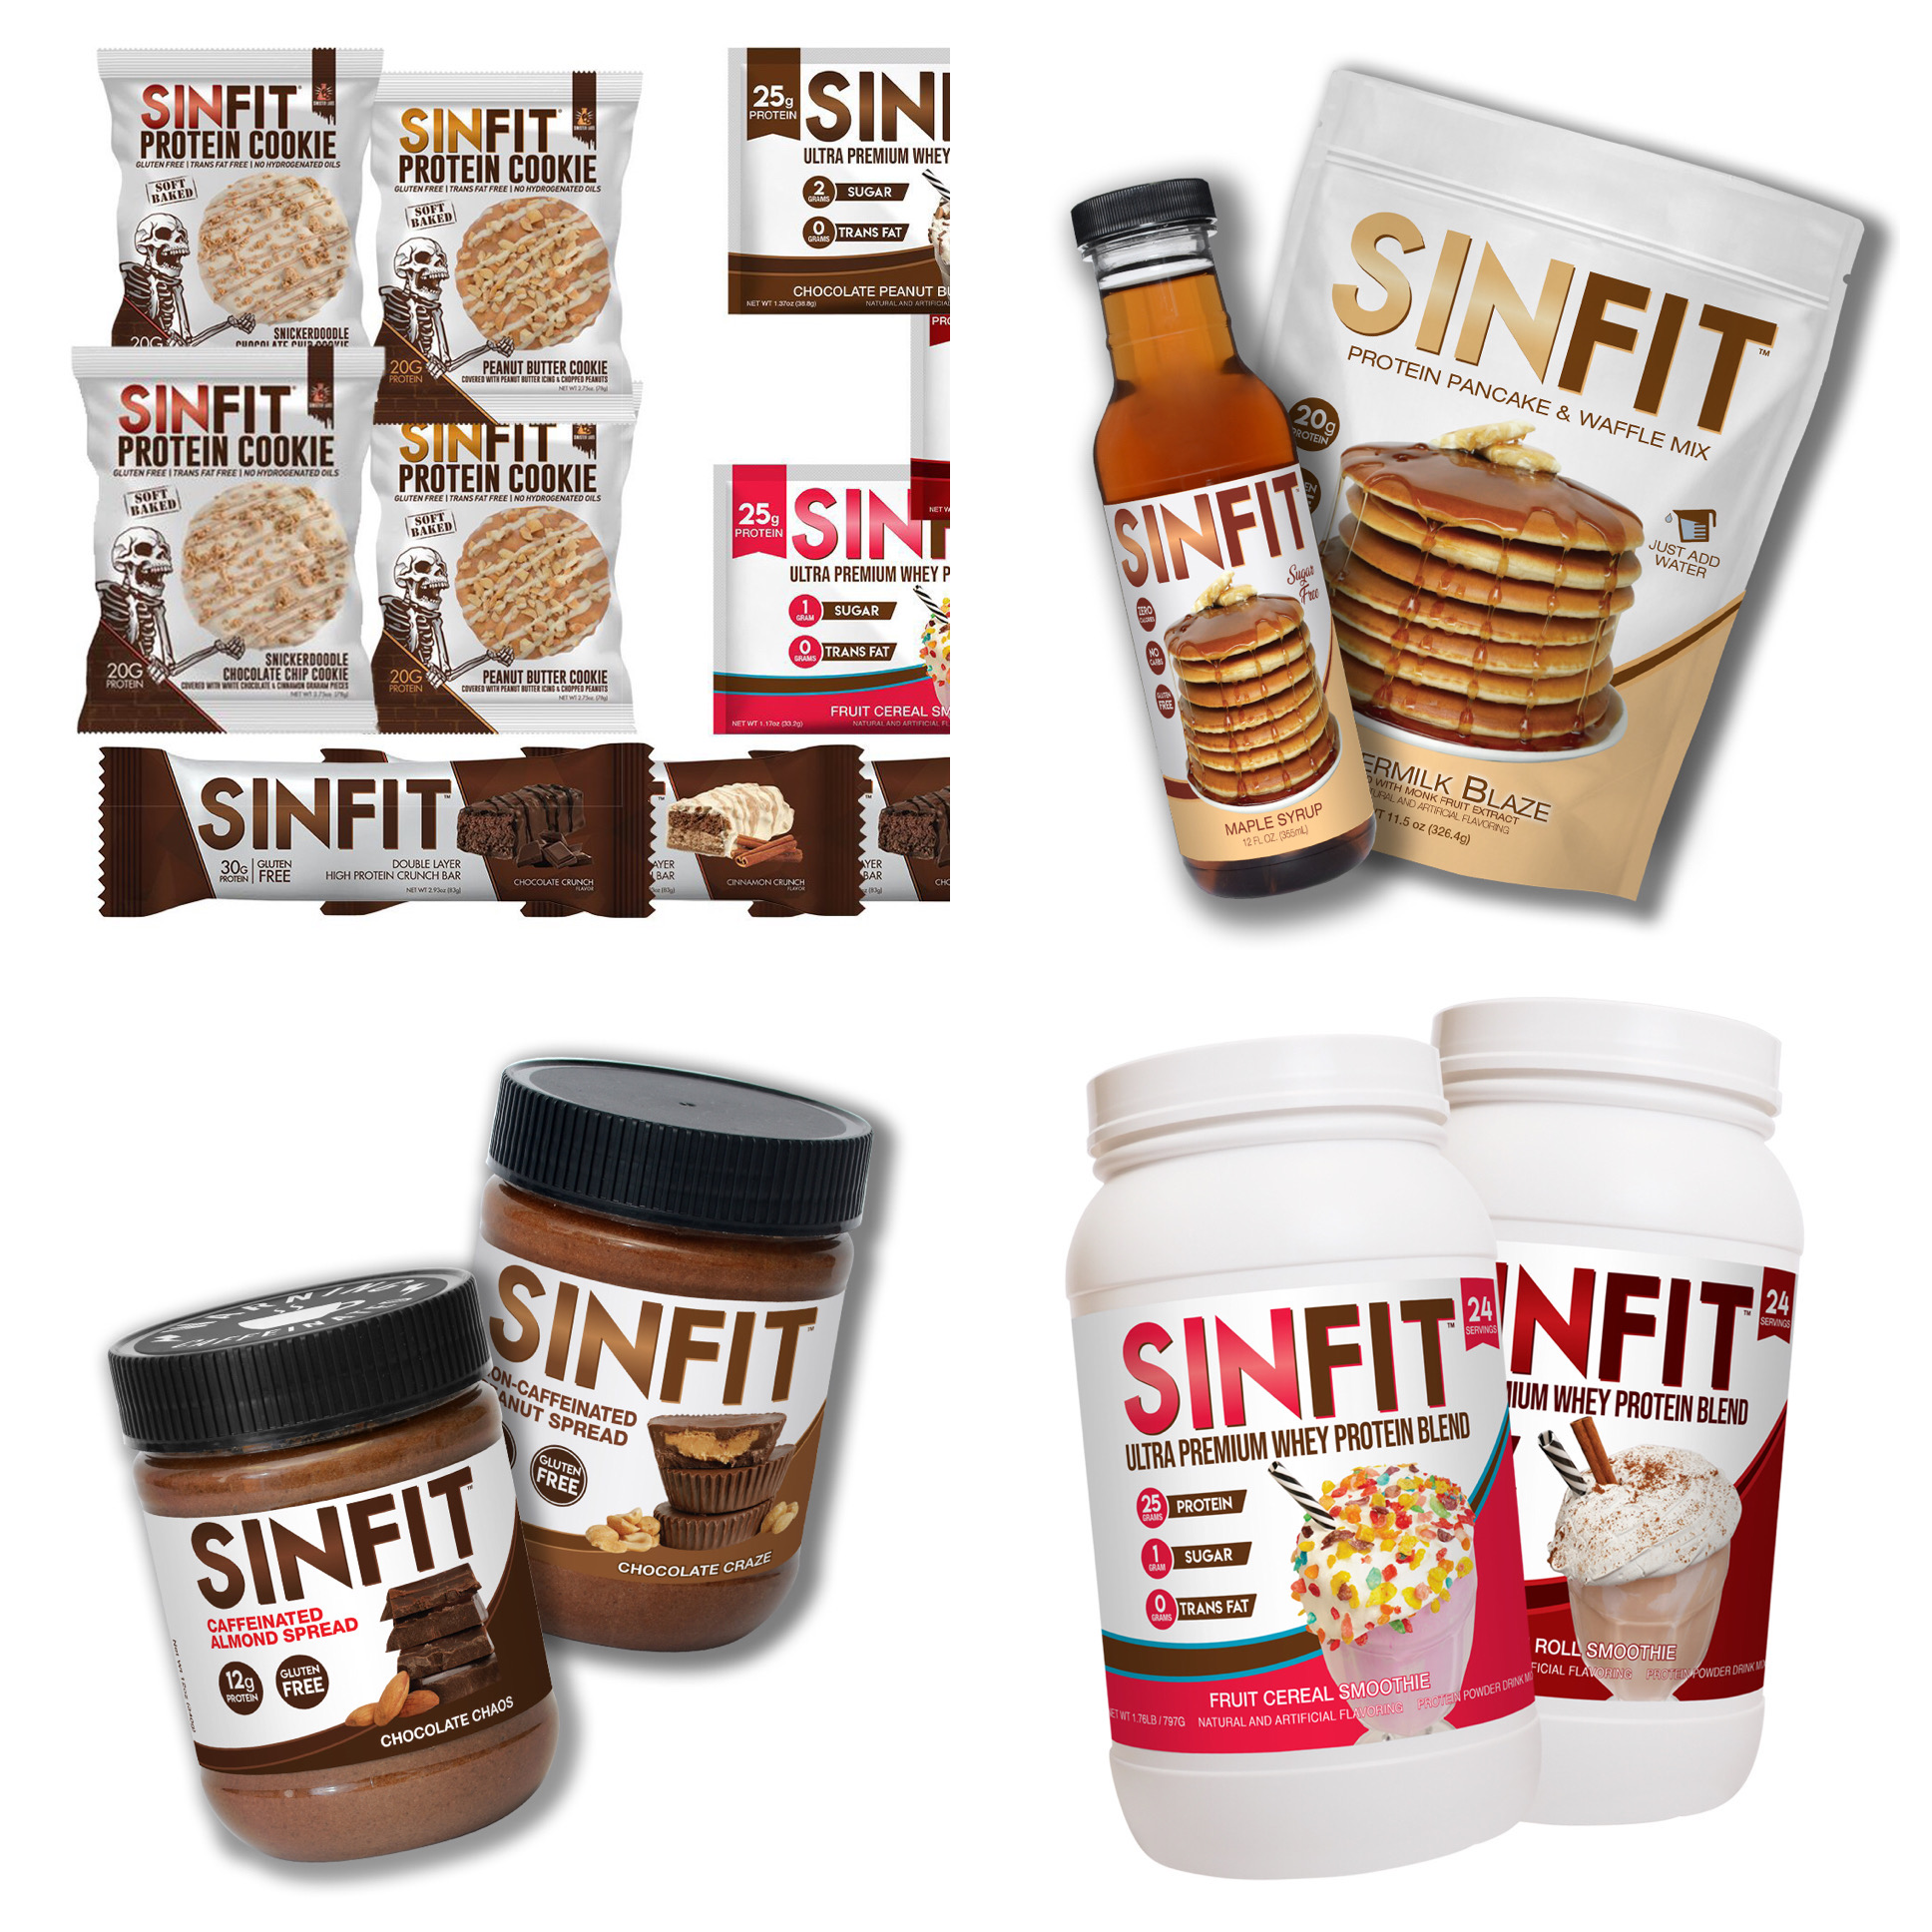 Sinfit Products